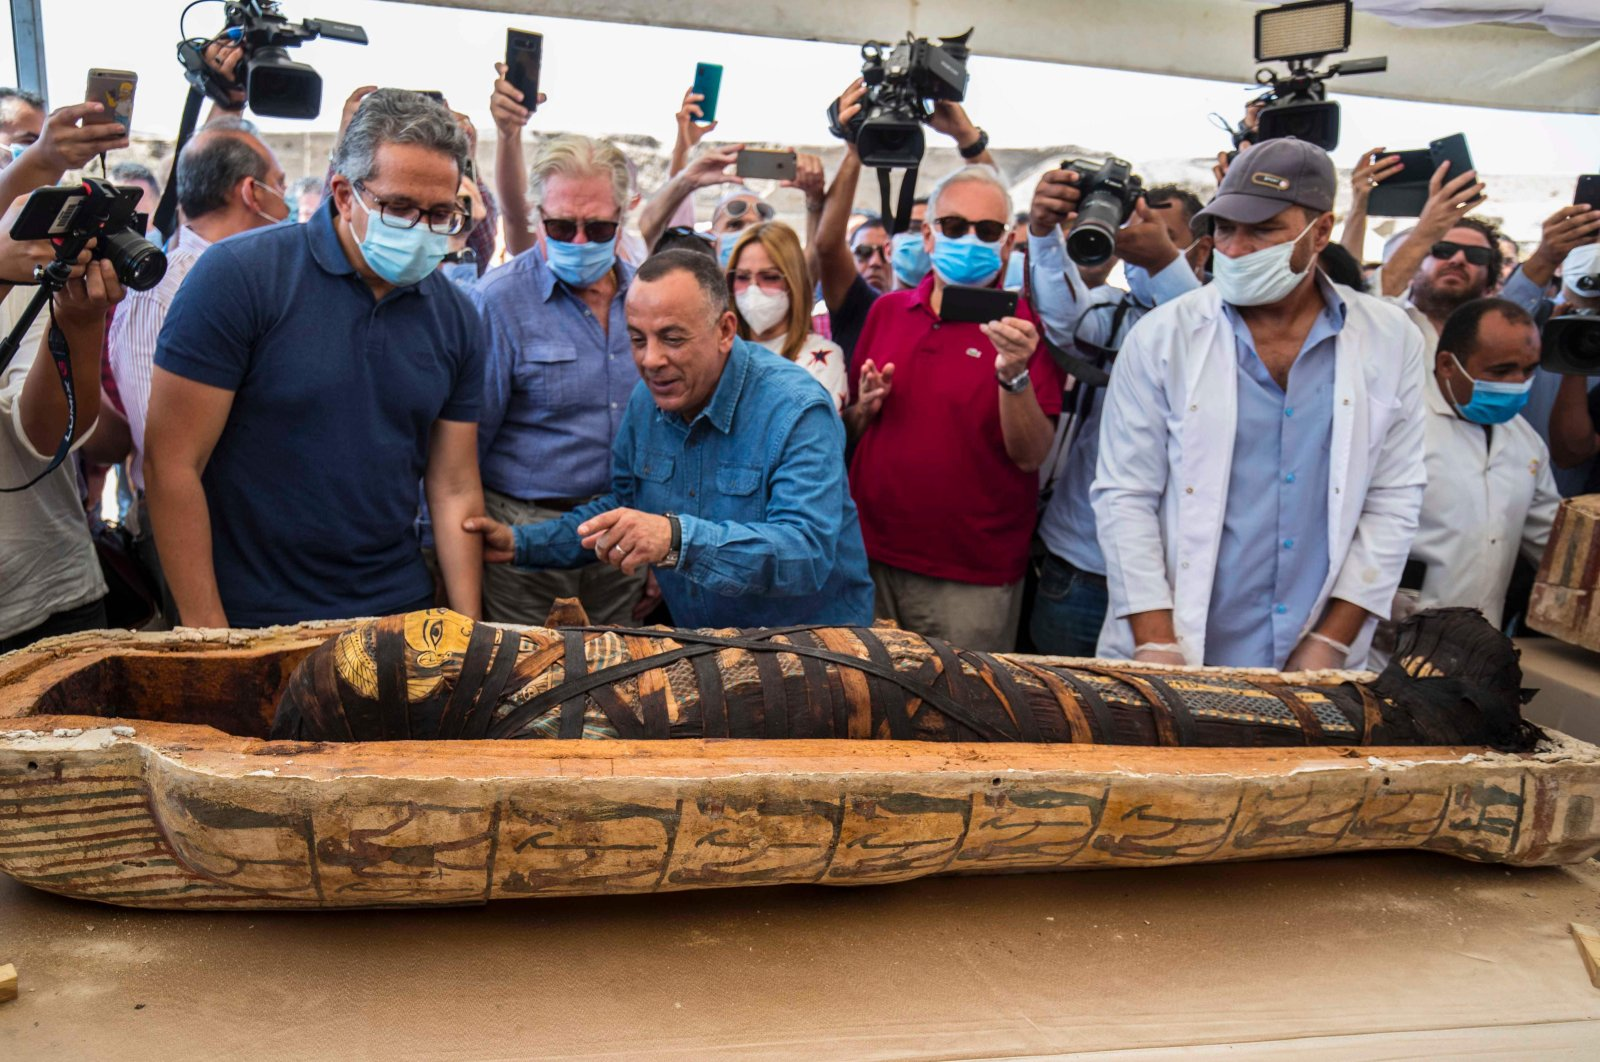 A picture taken on October 3, 2020 shows Egyptian Minister of Tourism and Antiquities Khaled Al-Anani (L), and Mustafa Waziri (R), Secretary General of the Supreme Council of Antiquities, unveil the mummy inside a sarcophagus excavated by the Egyptian archaeological mission working at the Saqqara necropolis, (AFP Photo)